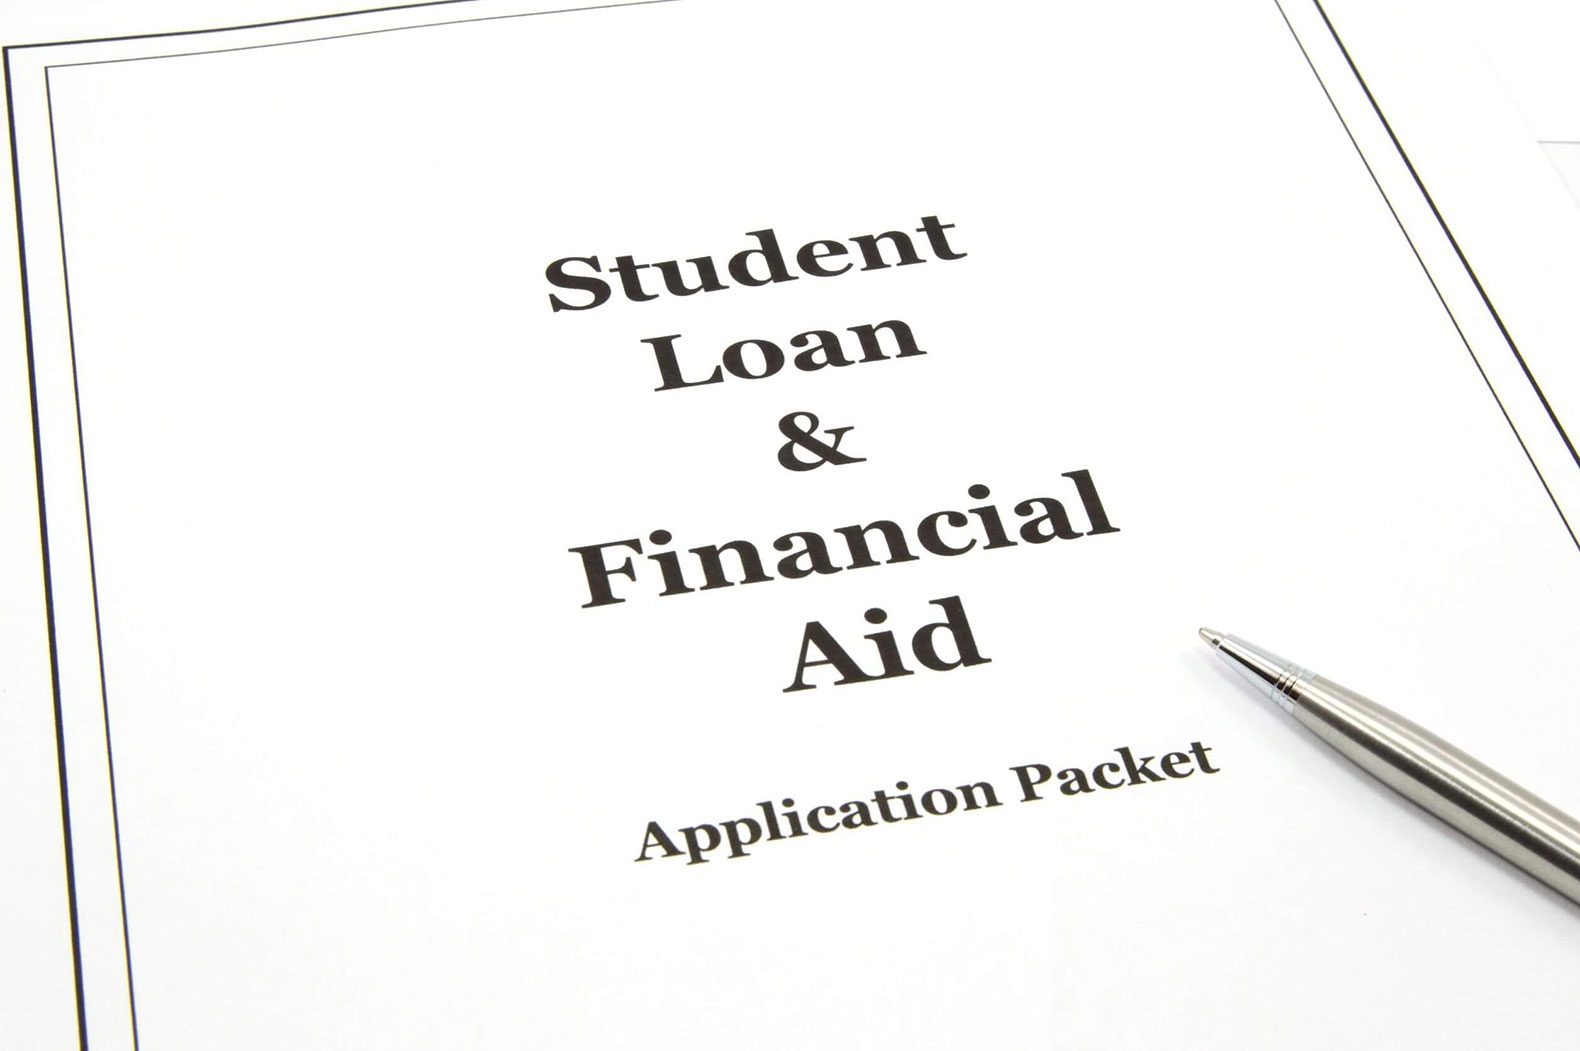 Financial Aid Packet